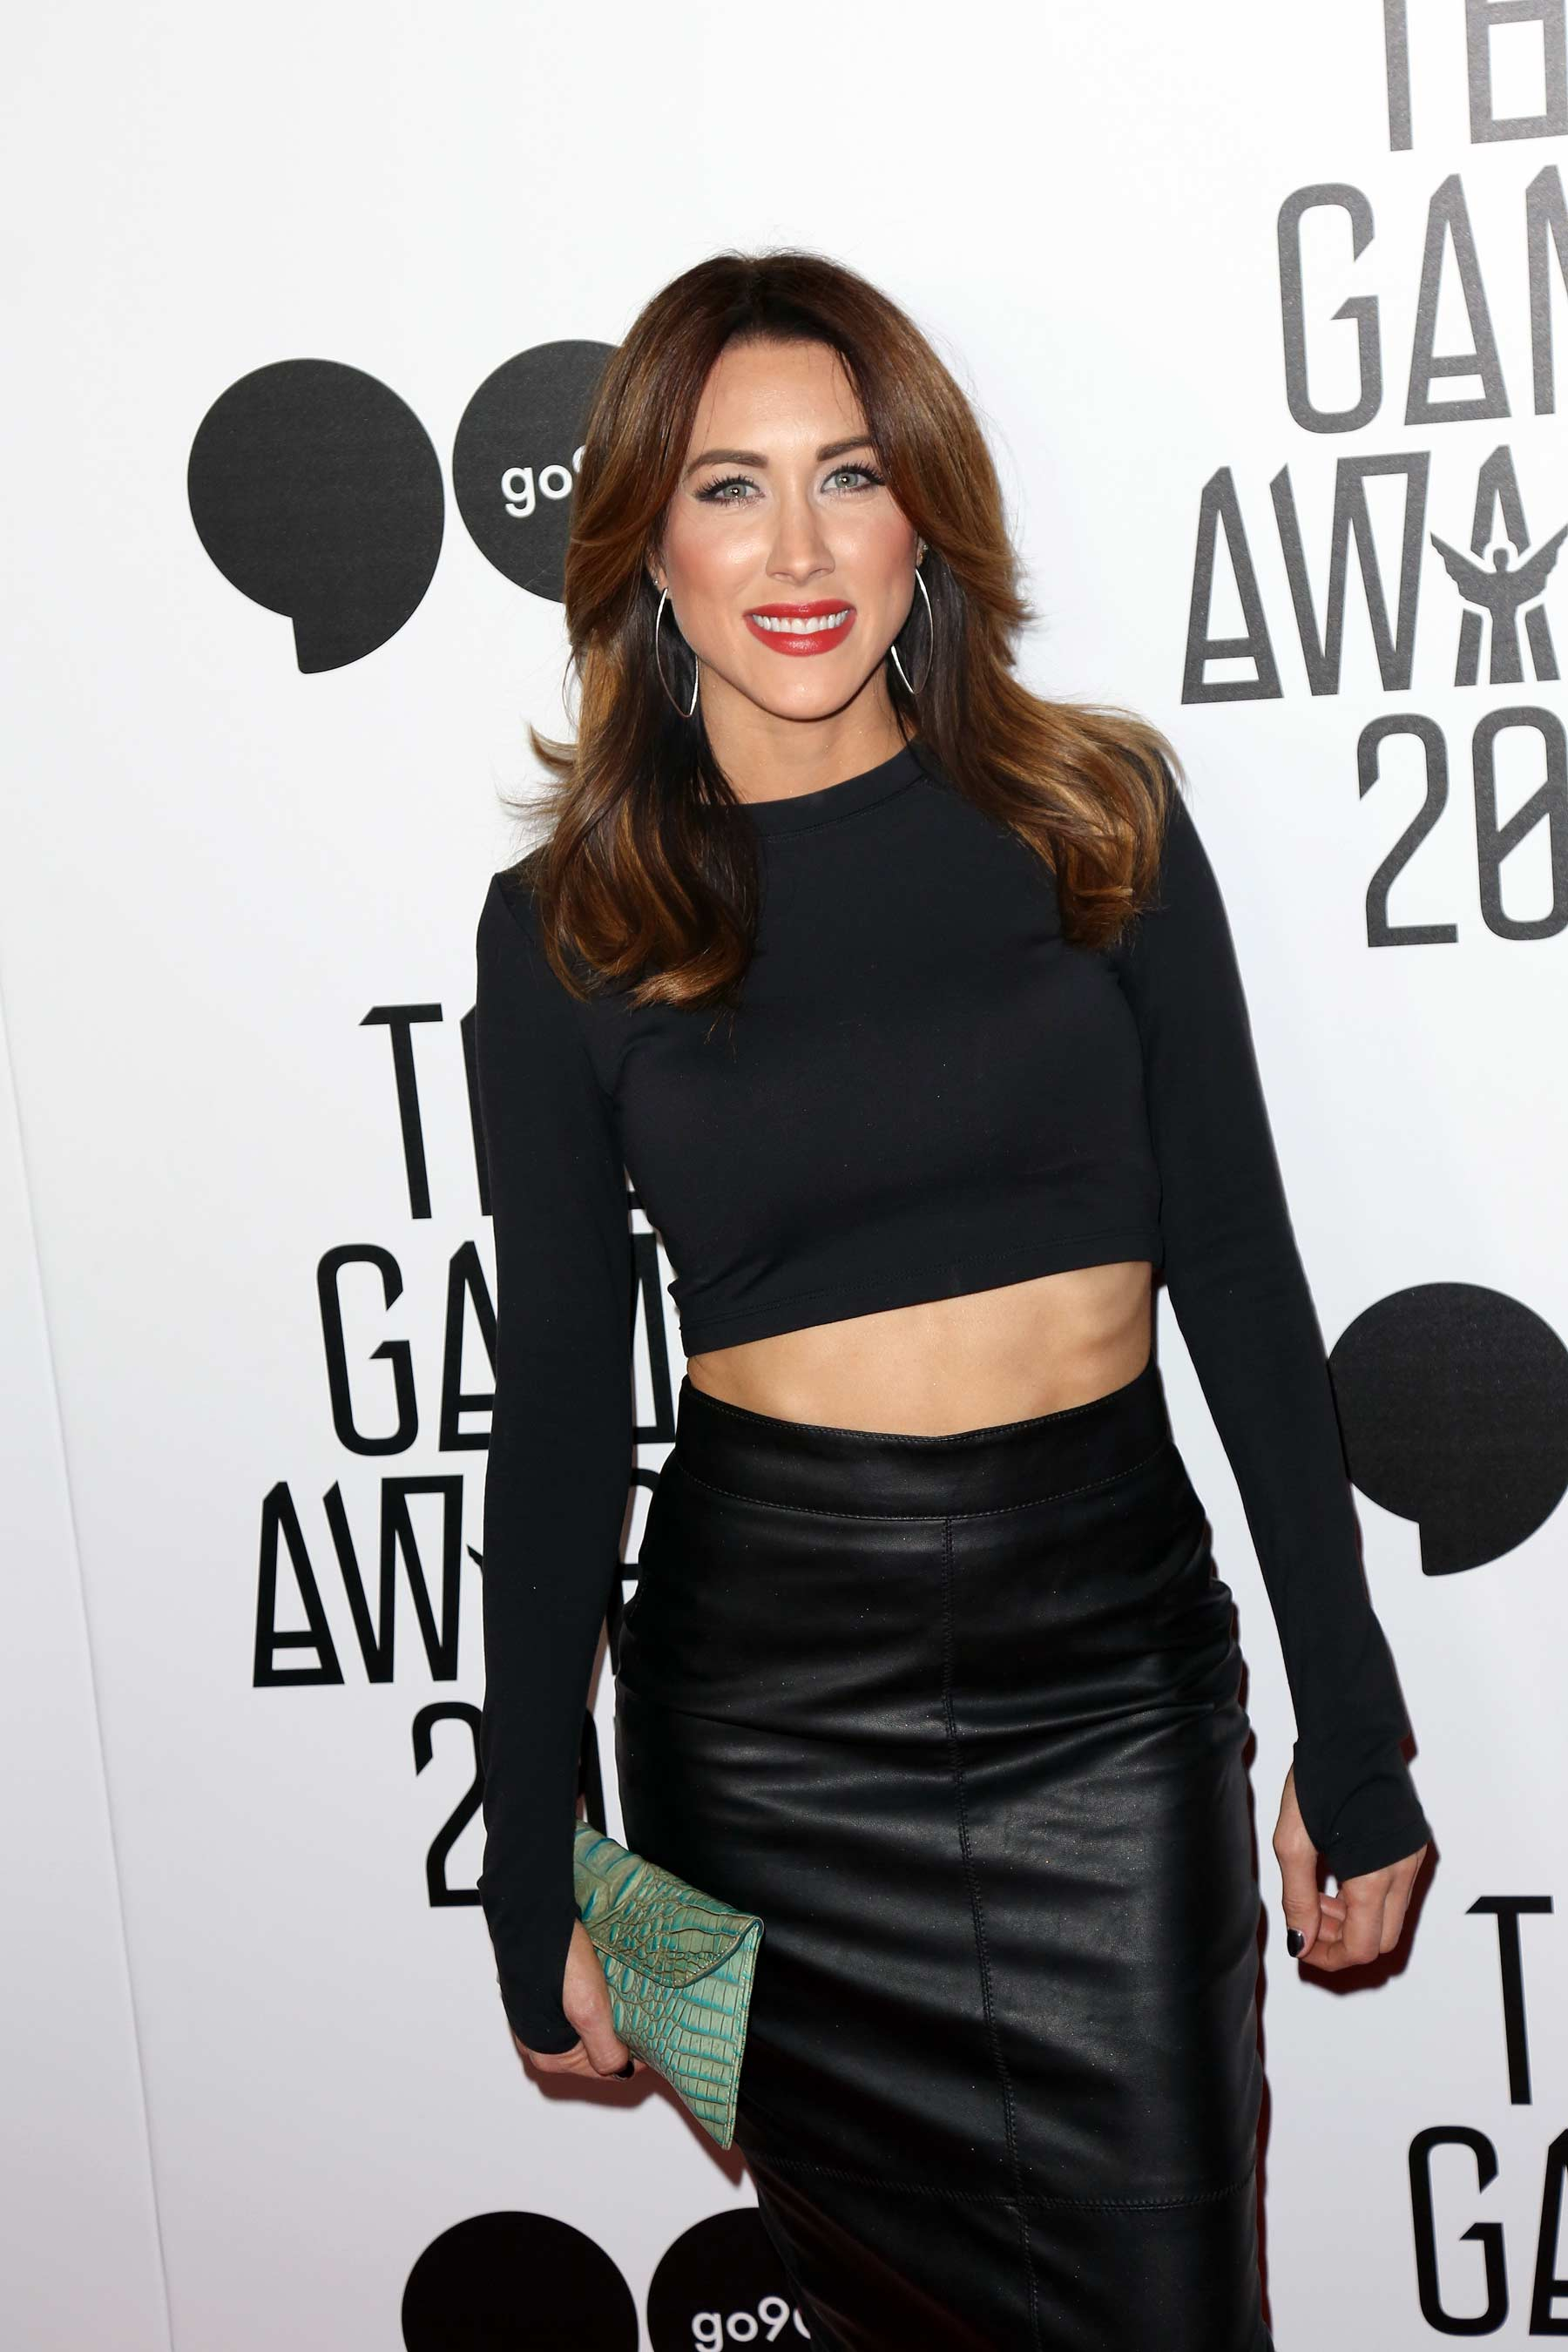 Erin Coscarelli Attends The Game Awards 2015 additionally Stars 72339 together with Russell Crowe 2012 BAFTA 03 in addition Oscar Health Insurance Print together with Vip Access. on oscar 2016